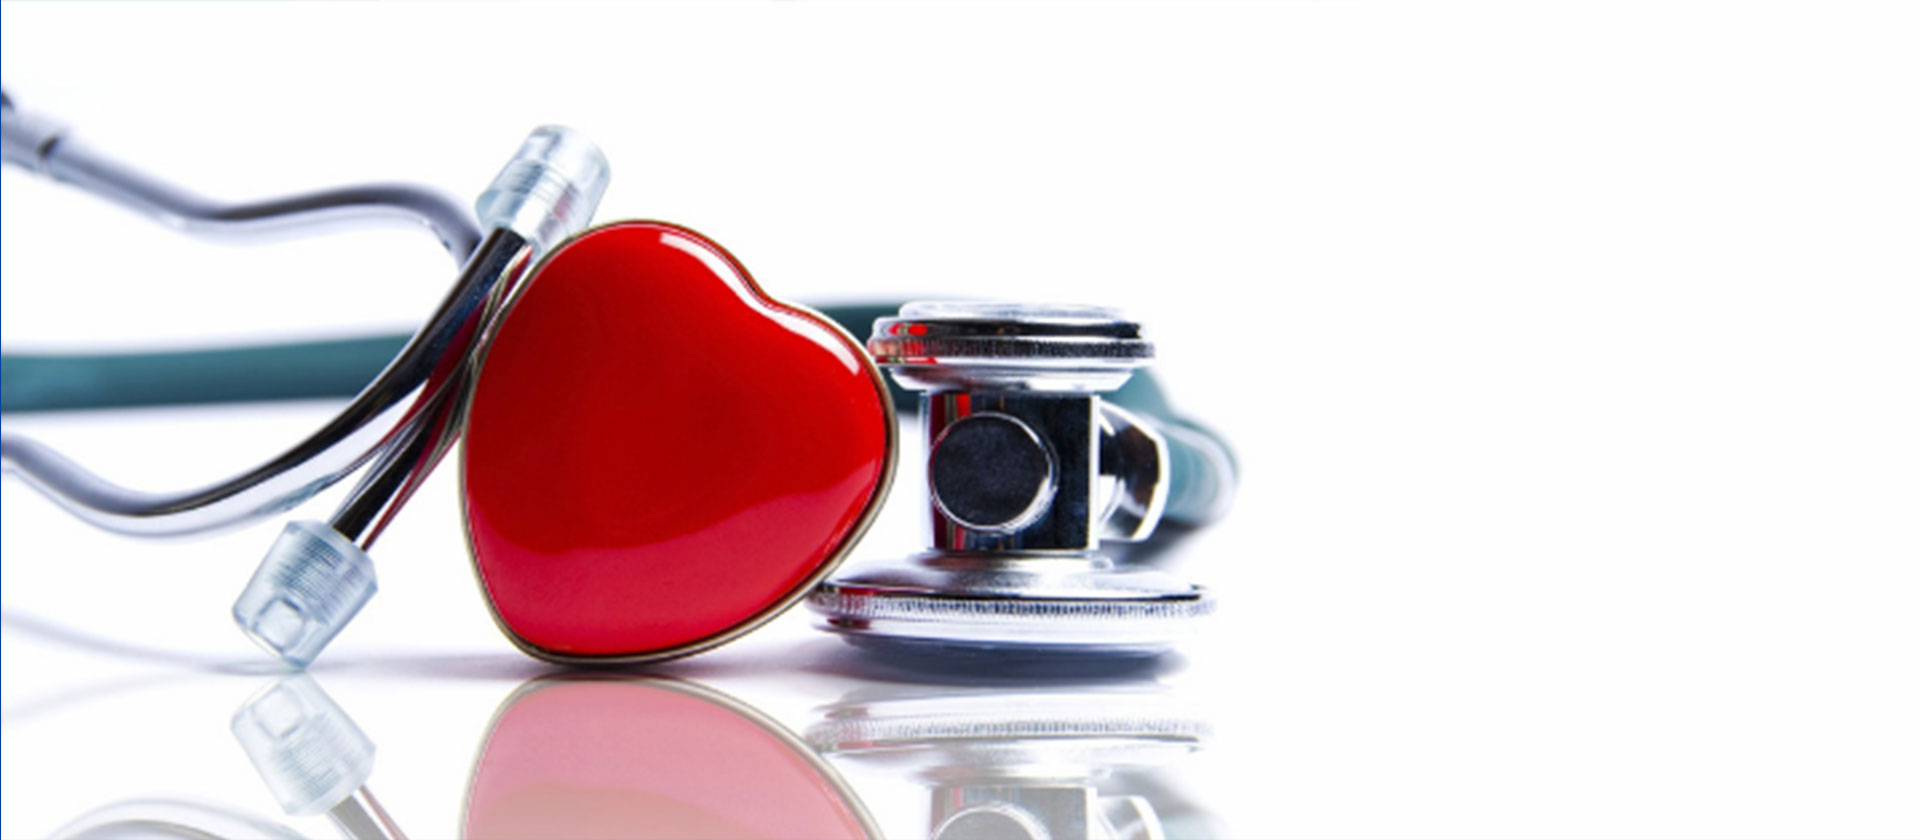 stethoscope with a heart